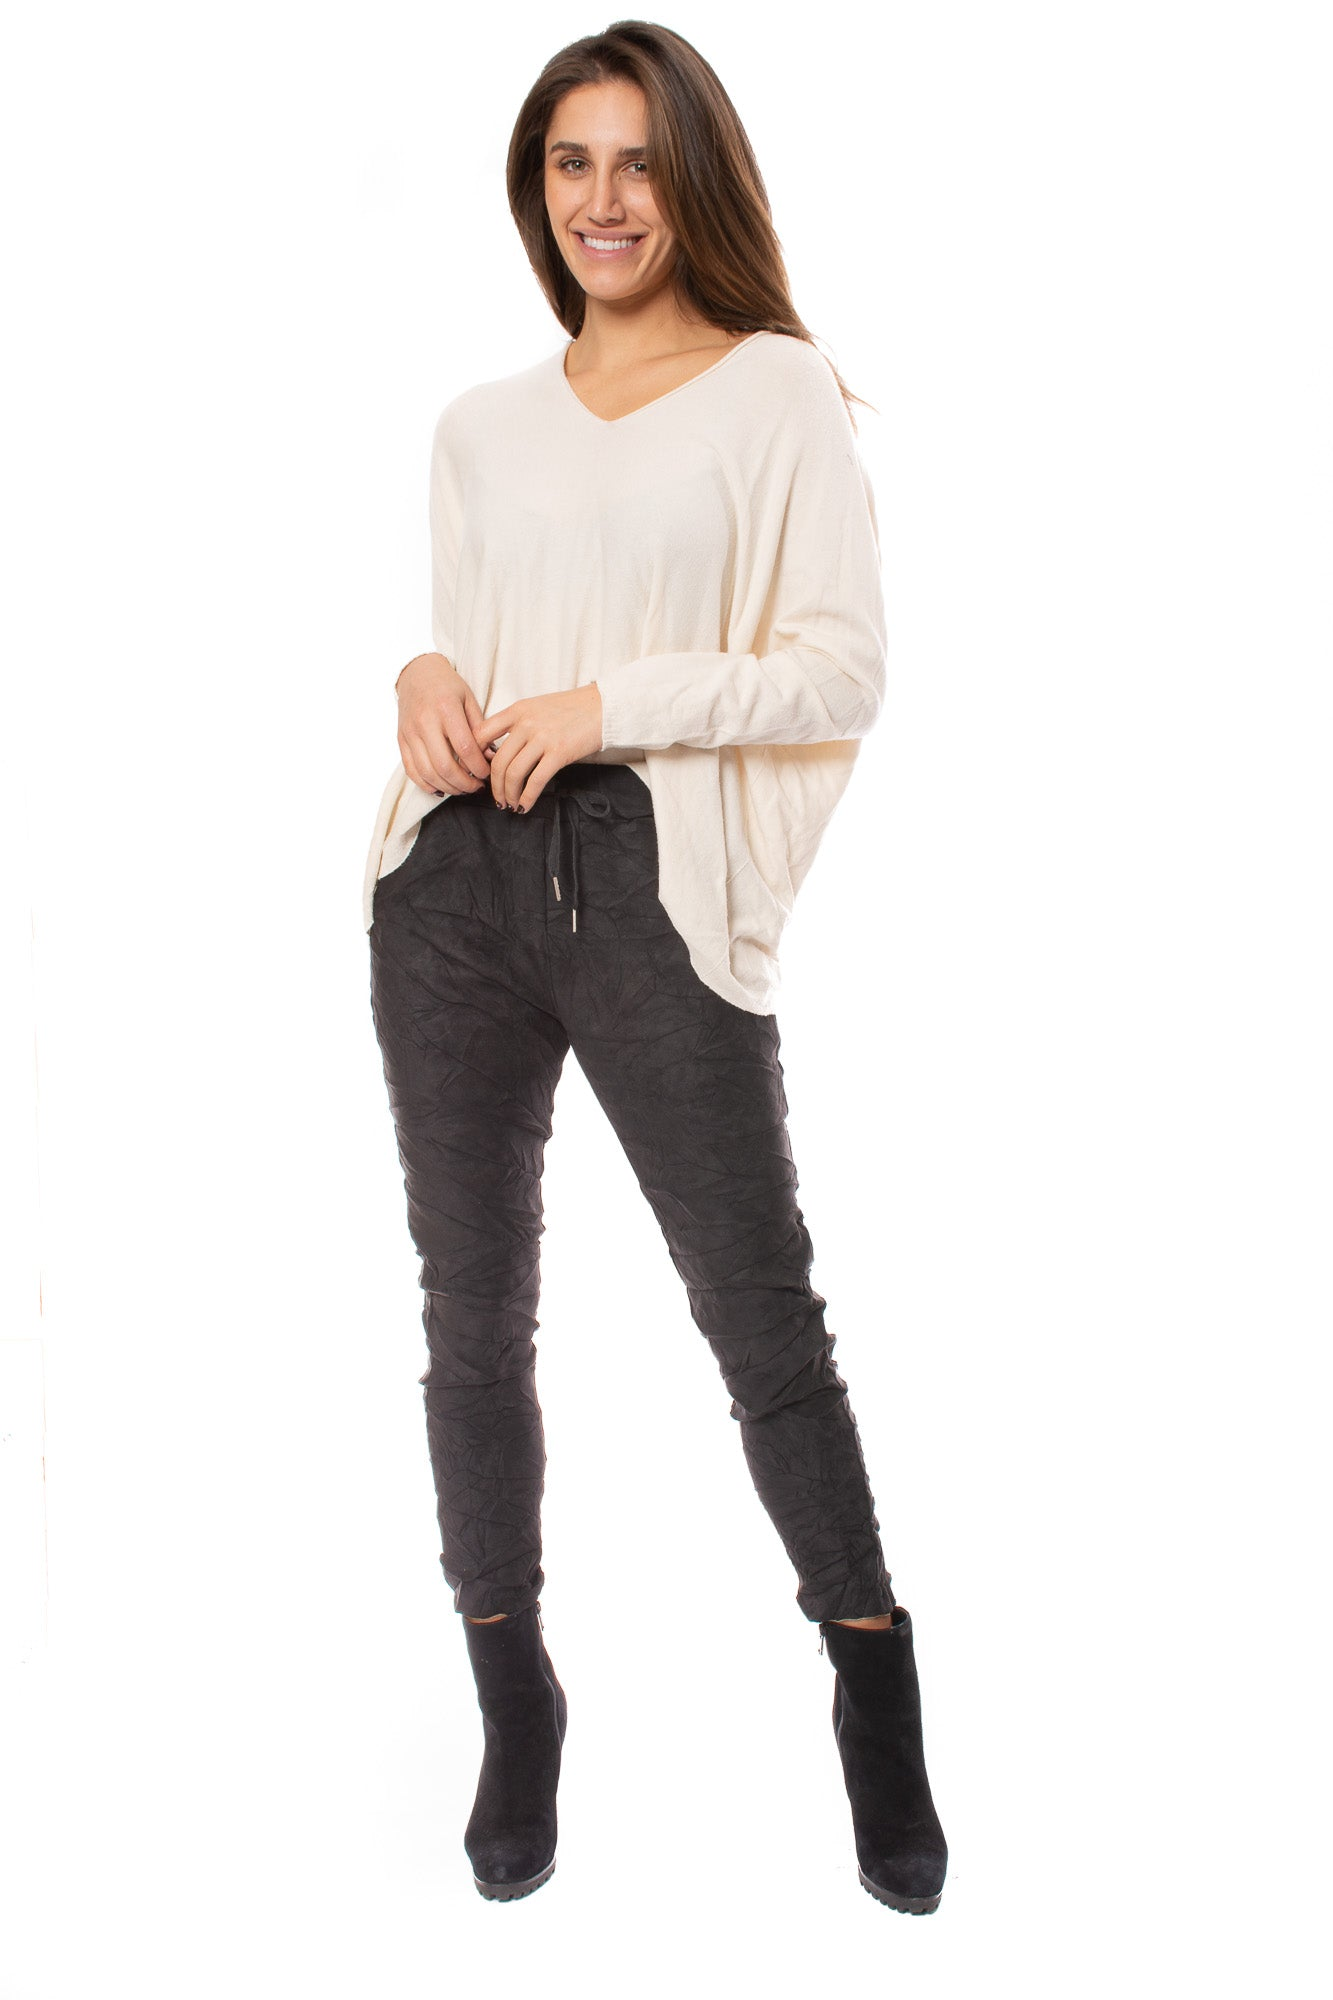 Brand Bazaar - One Size Fits All Double V Neck Sweater (CASH V, Beige)